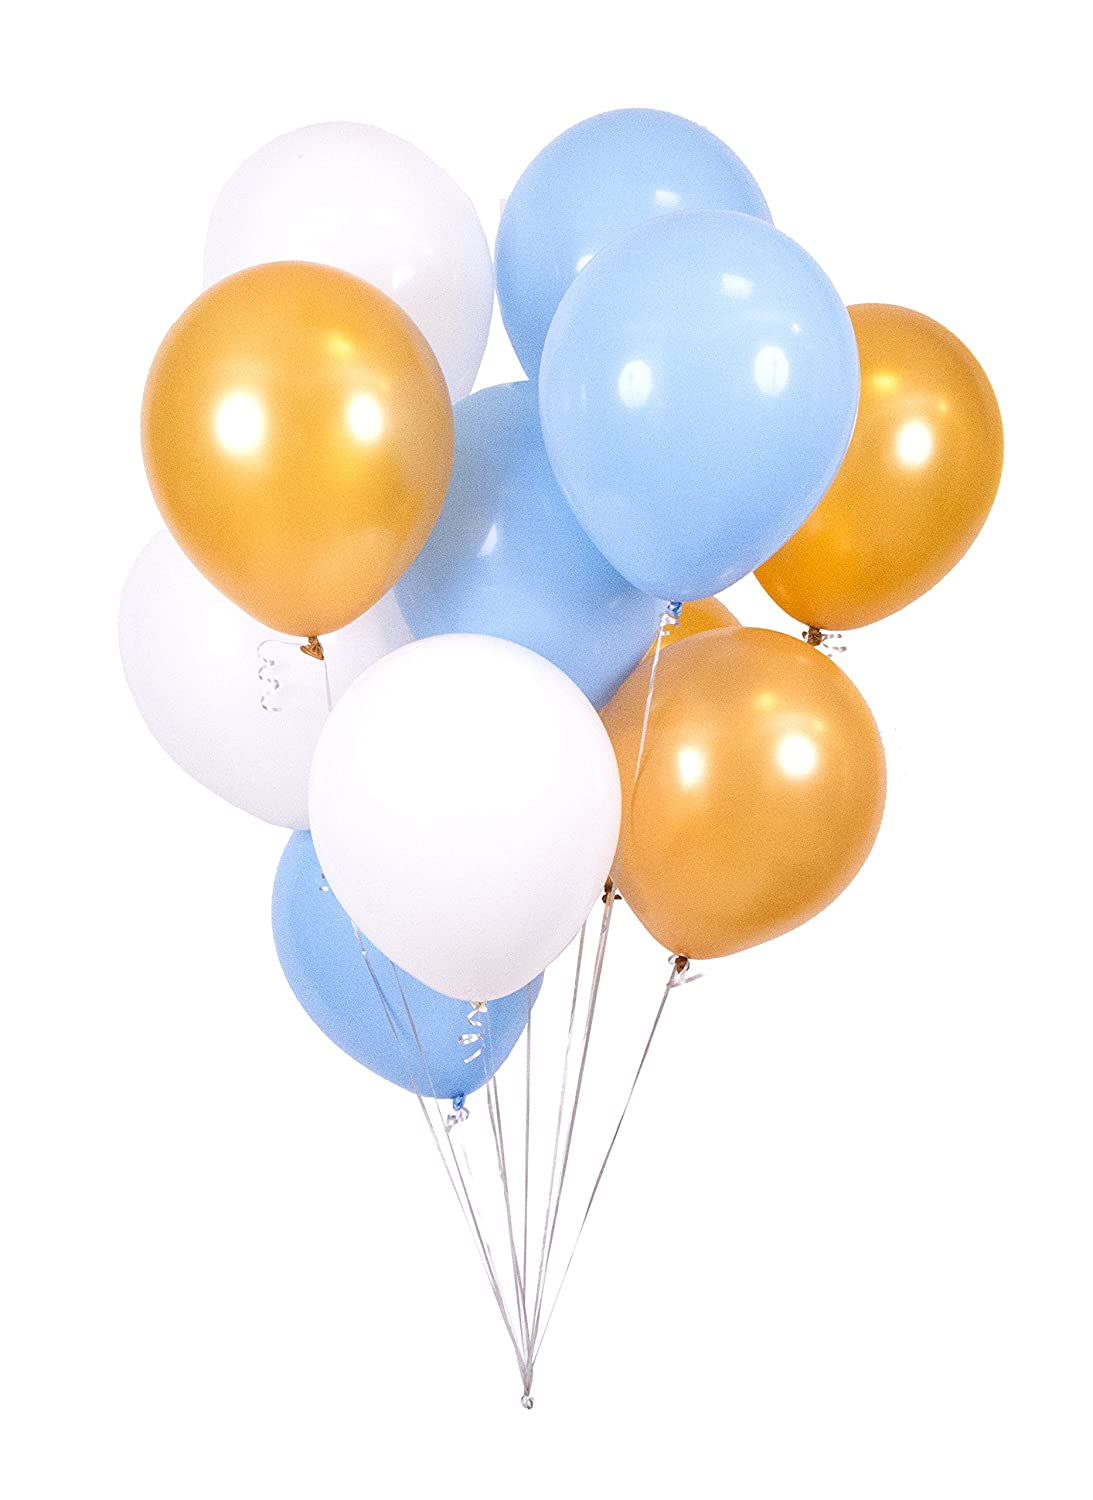 White /& Pale Blue Balloons 16 inch 12 x Gold Super Thick Professional Grade